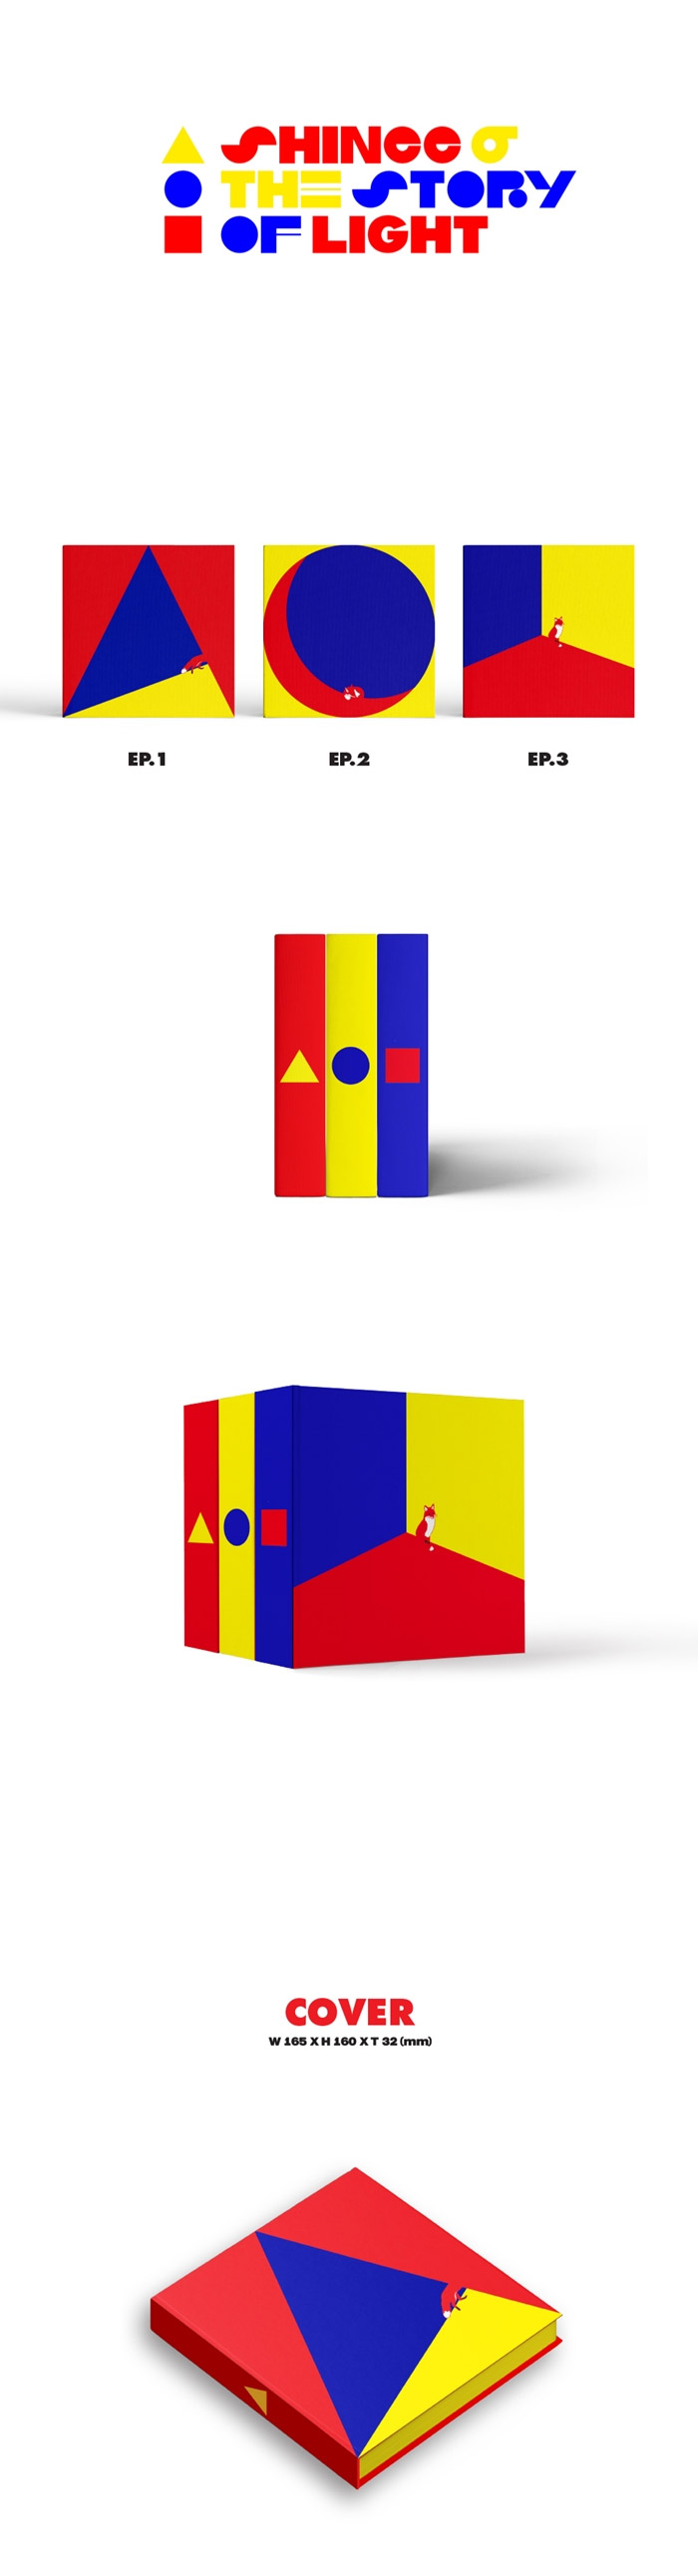 SHINee: The Story of Light Ep  1 - 6th Album